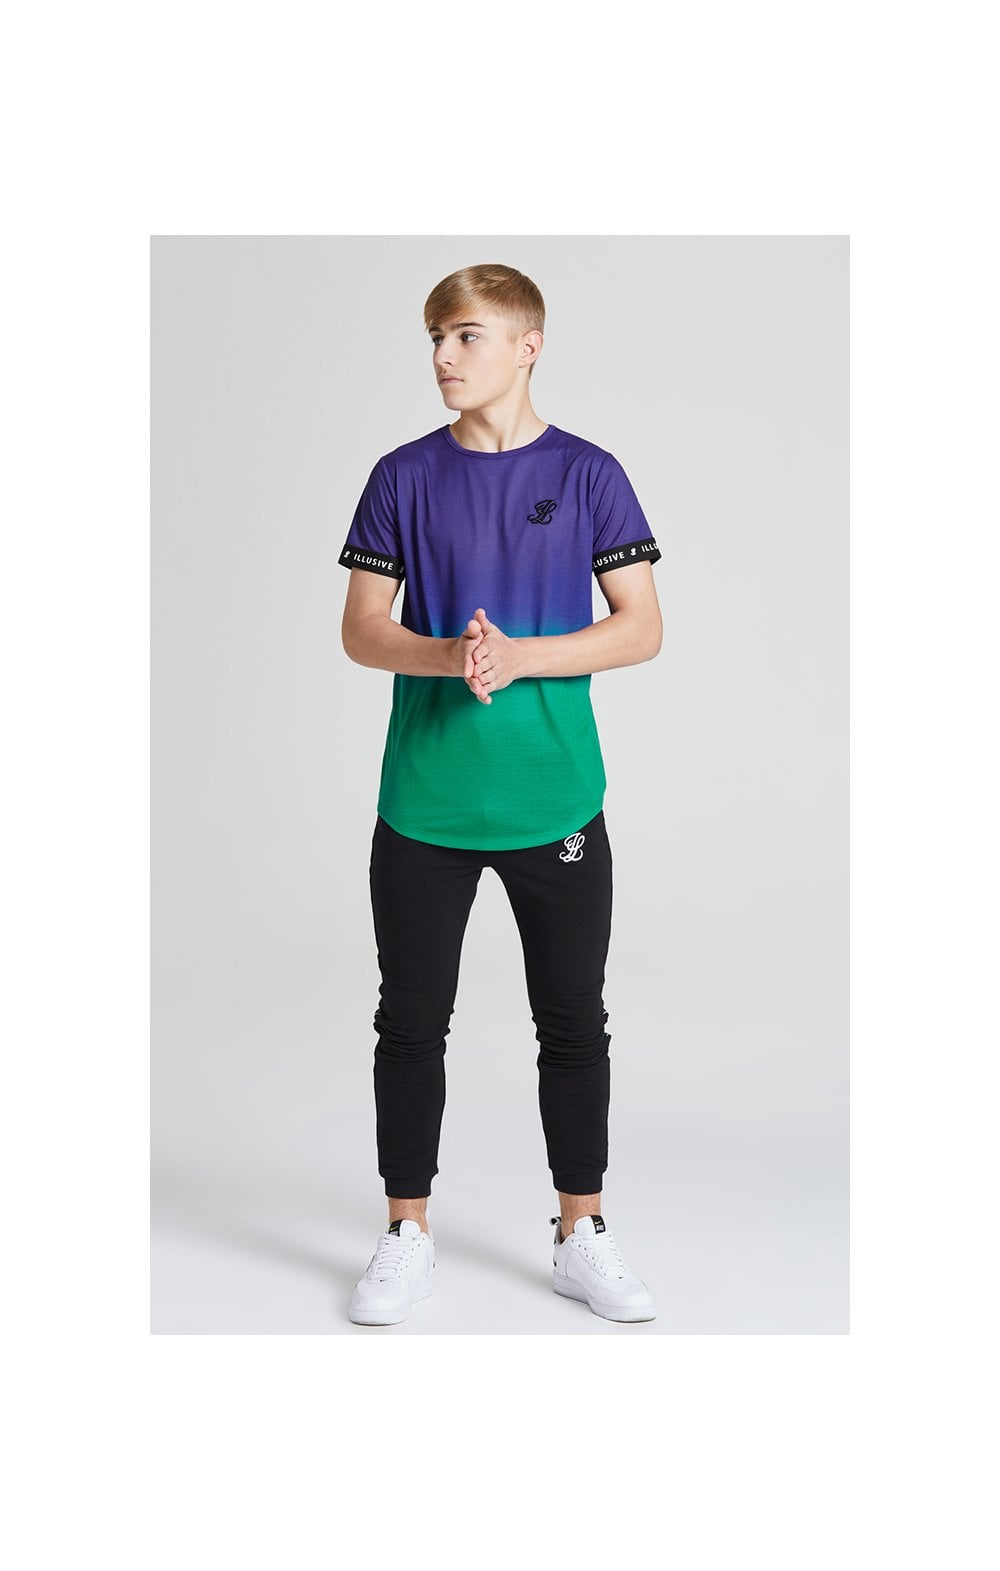 Load image into Gallery viewer, Illusive London Fade Tech Tee - Purple & Teal Green (3)